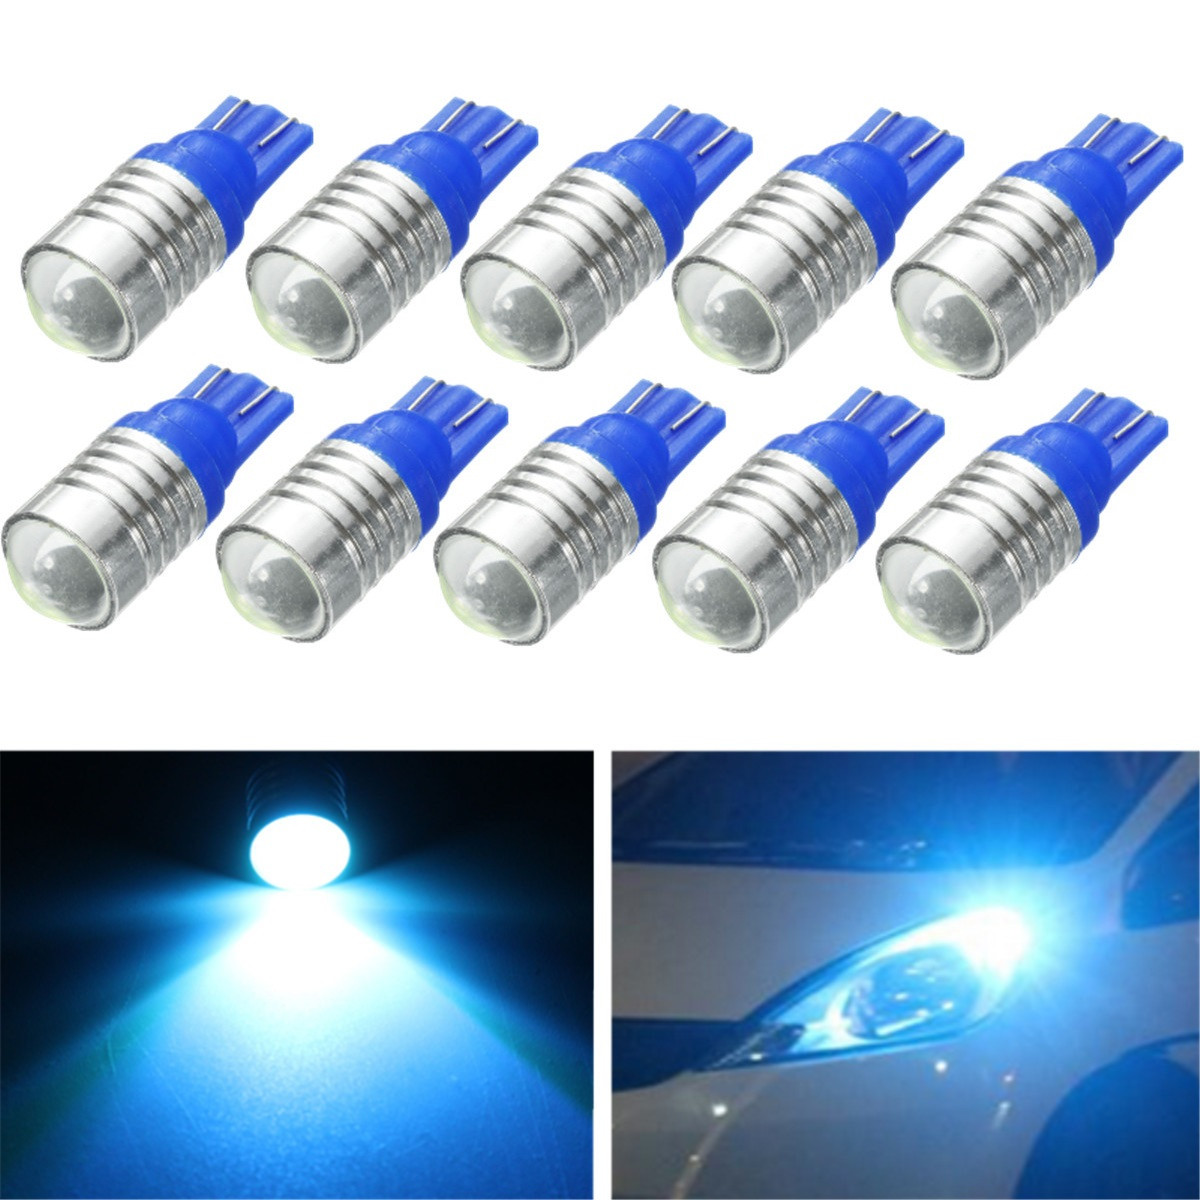 10Pcs Ice Blue T10 3W LED Car Interior Exterior Replacement Bulb Light